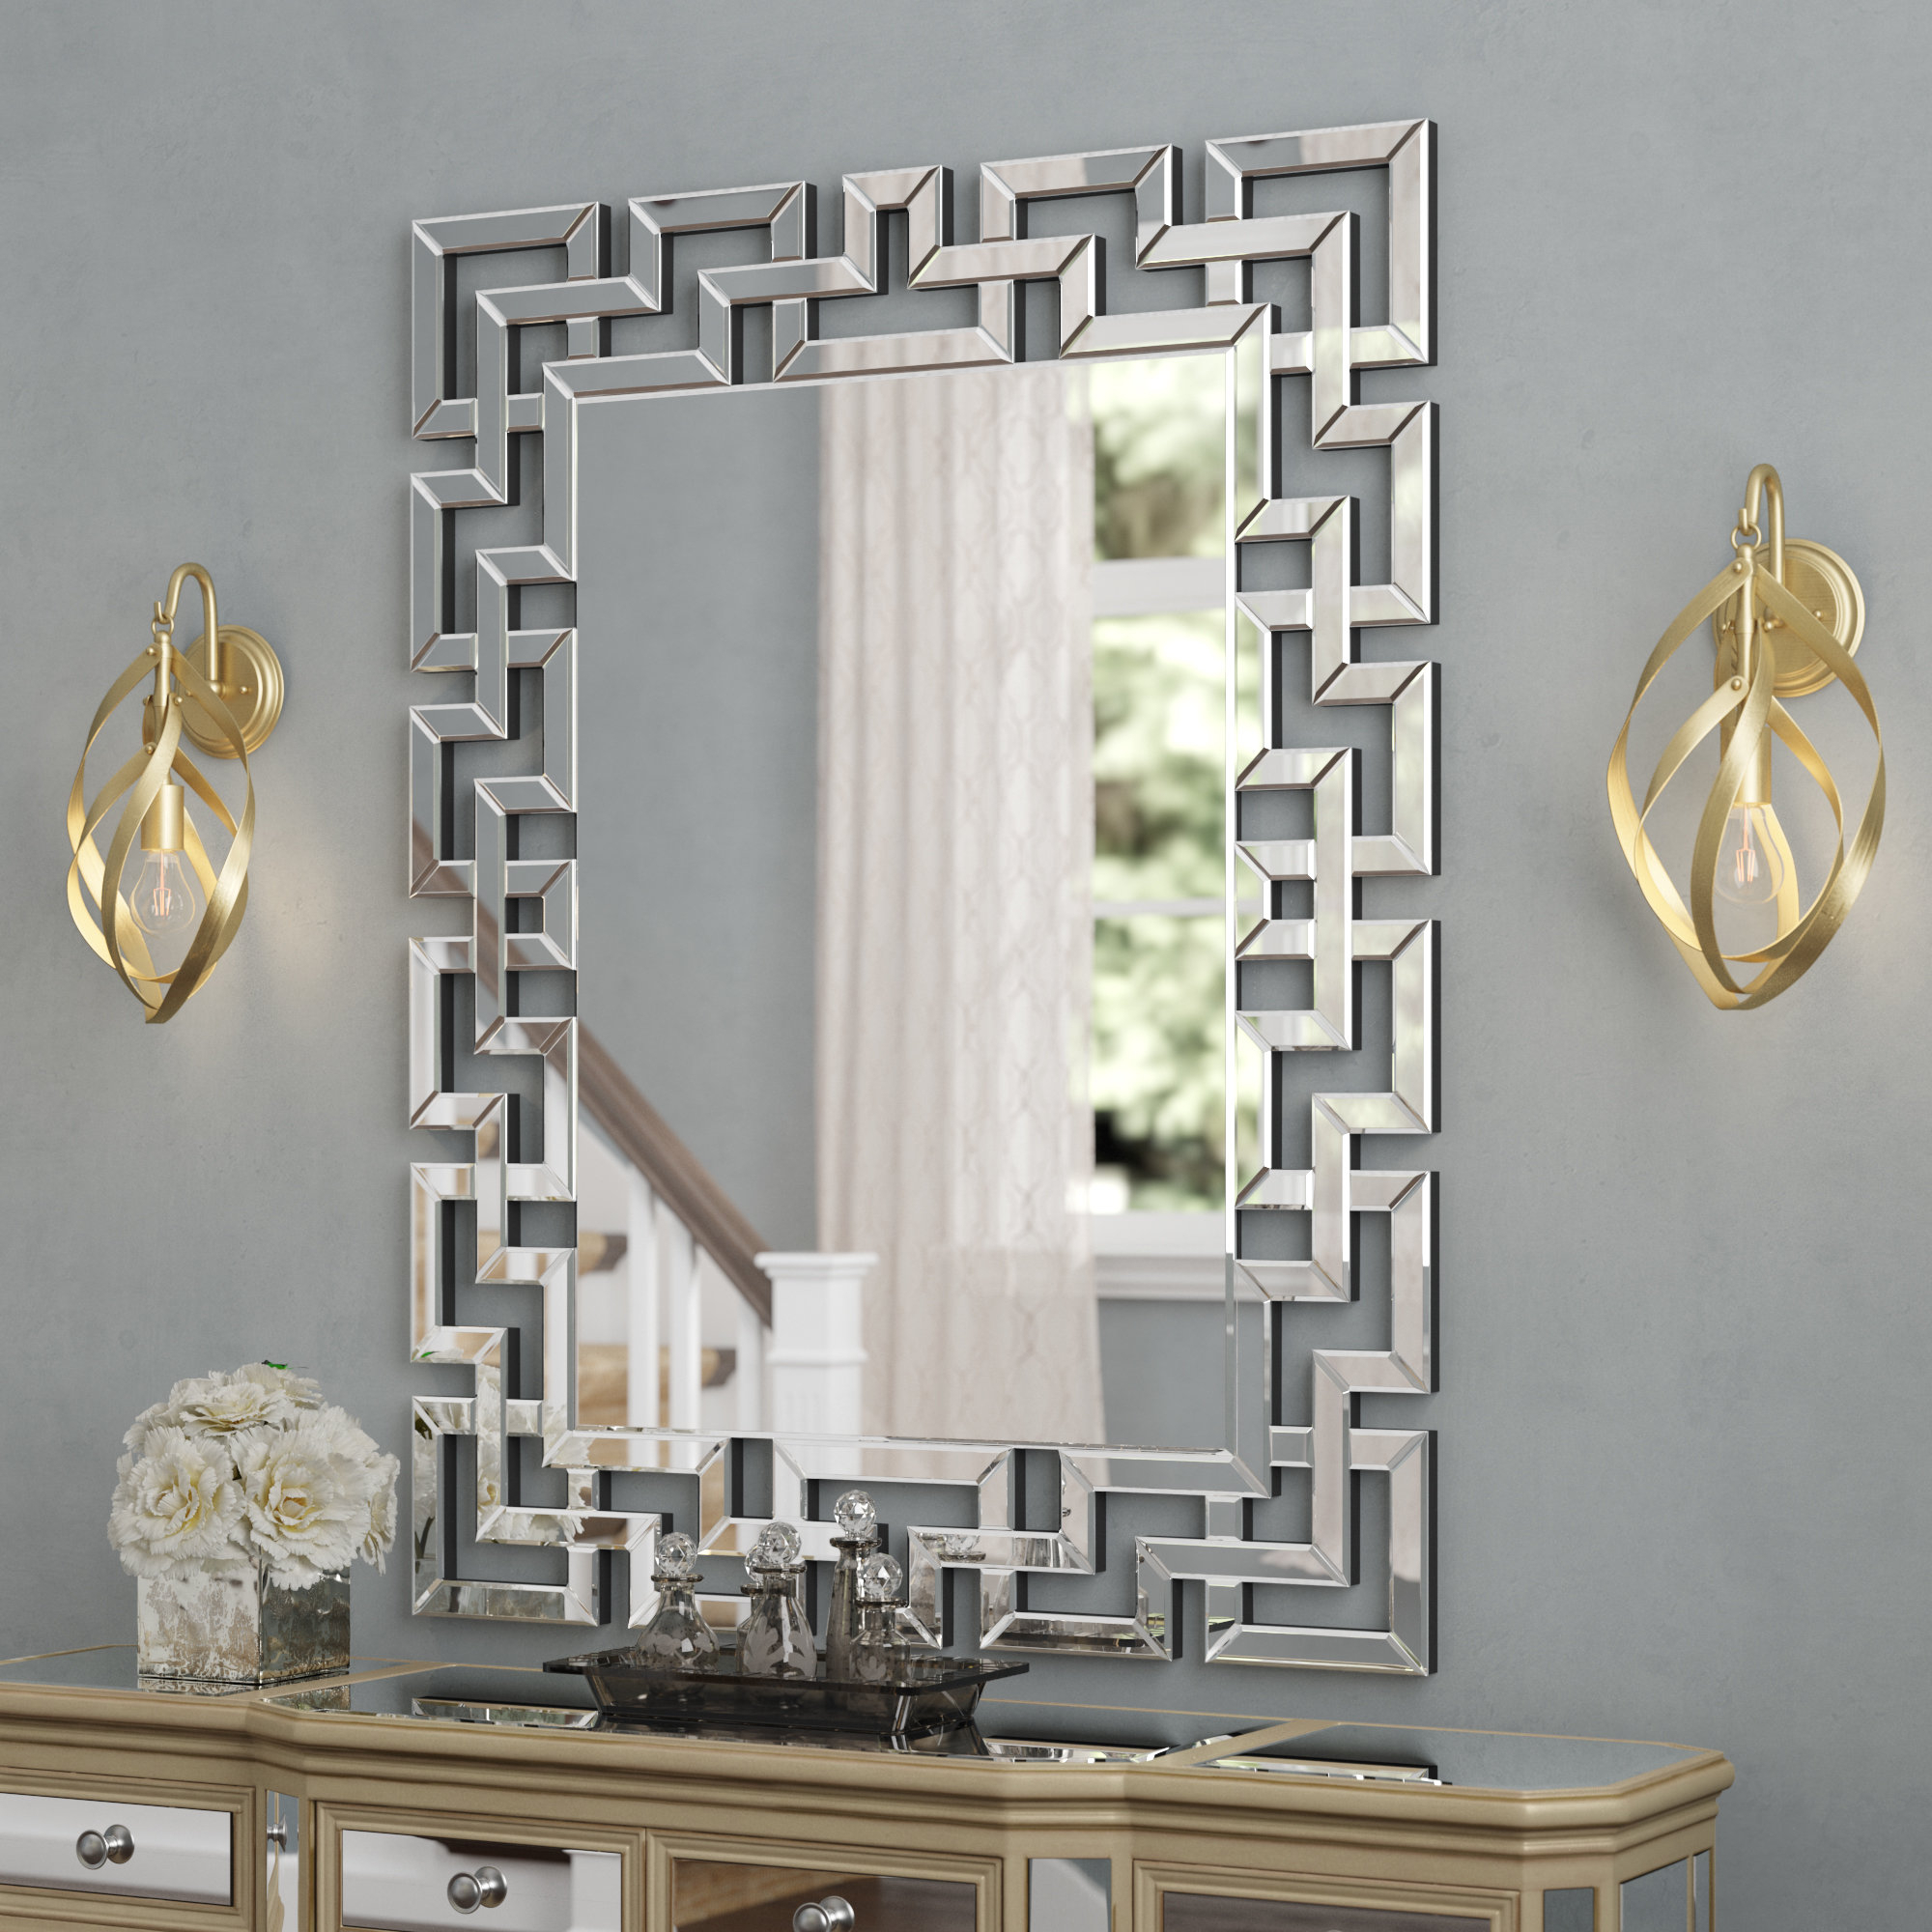 Trendy Caja Rectangle Glass Frame Wall Mirror Pertaining To Caja Rectangle Glass Frame Wall Mirrors (View 1 of 20)